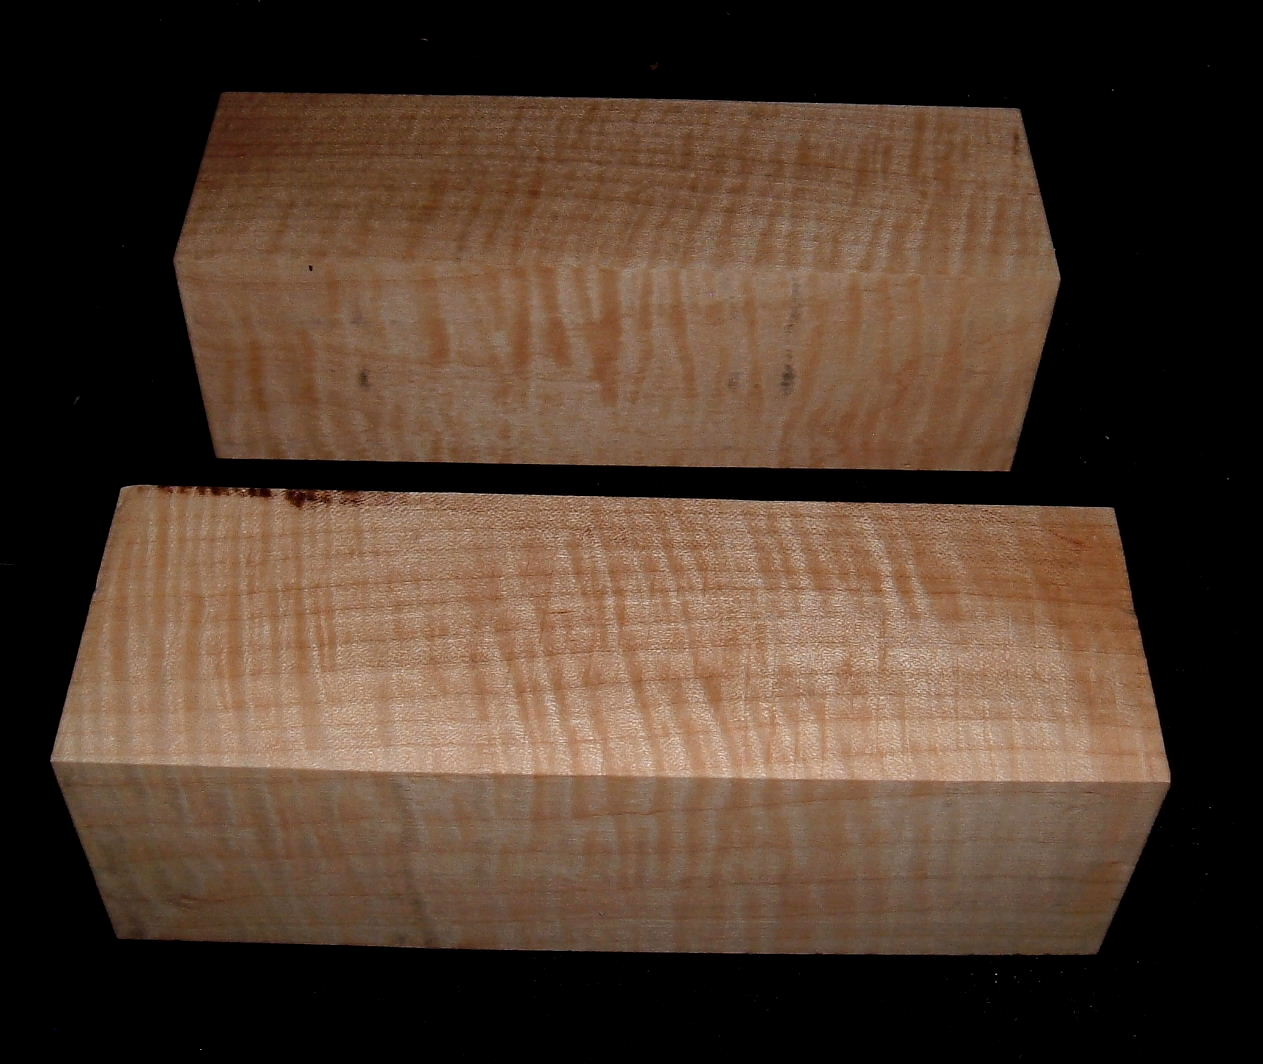 MS-2757n, (2) 2-1/2x2-1/2x7-3/4, Curly Tiger Maple, Turning Wood